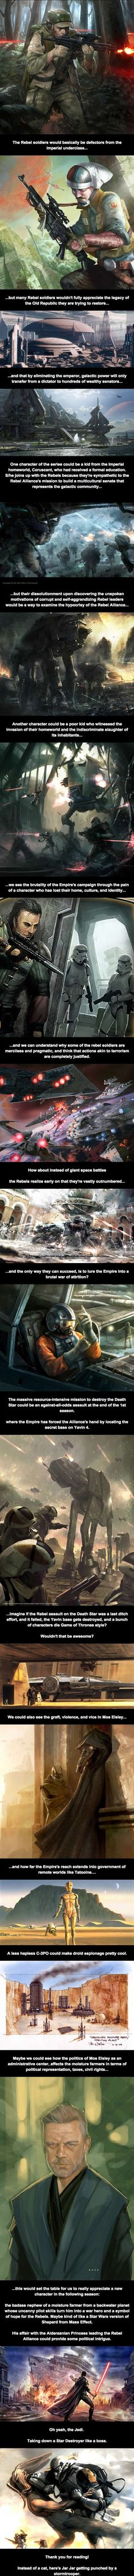 This.  This right here!  BEST THING EVER!!!!!  Picture Battlestar Galactica meets Game of Thrones set in the Star Wars universe!  Yes, I am very interested in Episode VII, but I would MUCH rather watch this!  New Star Wars - Imgur